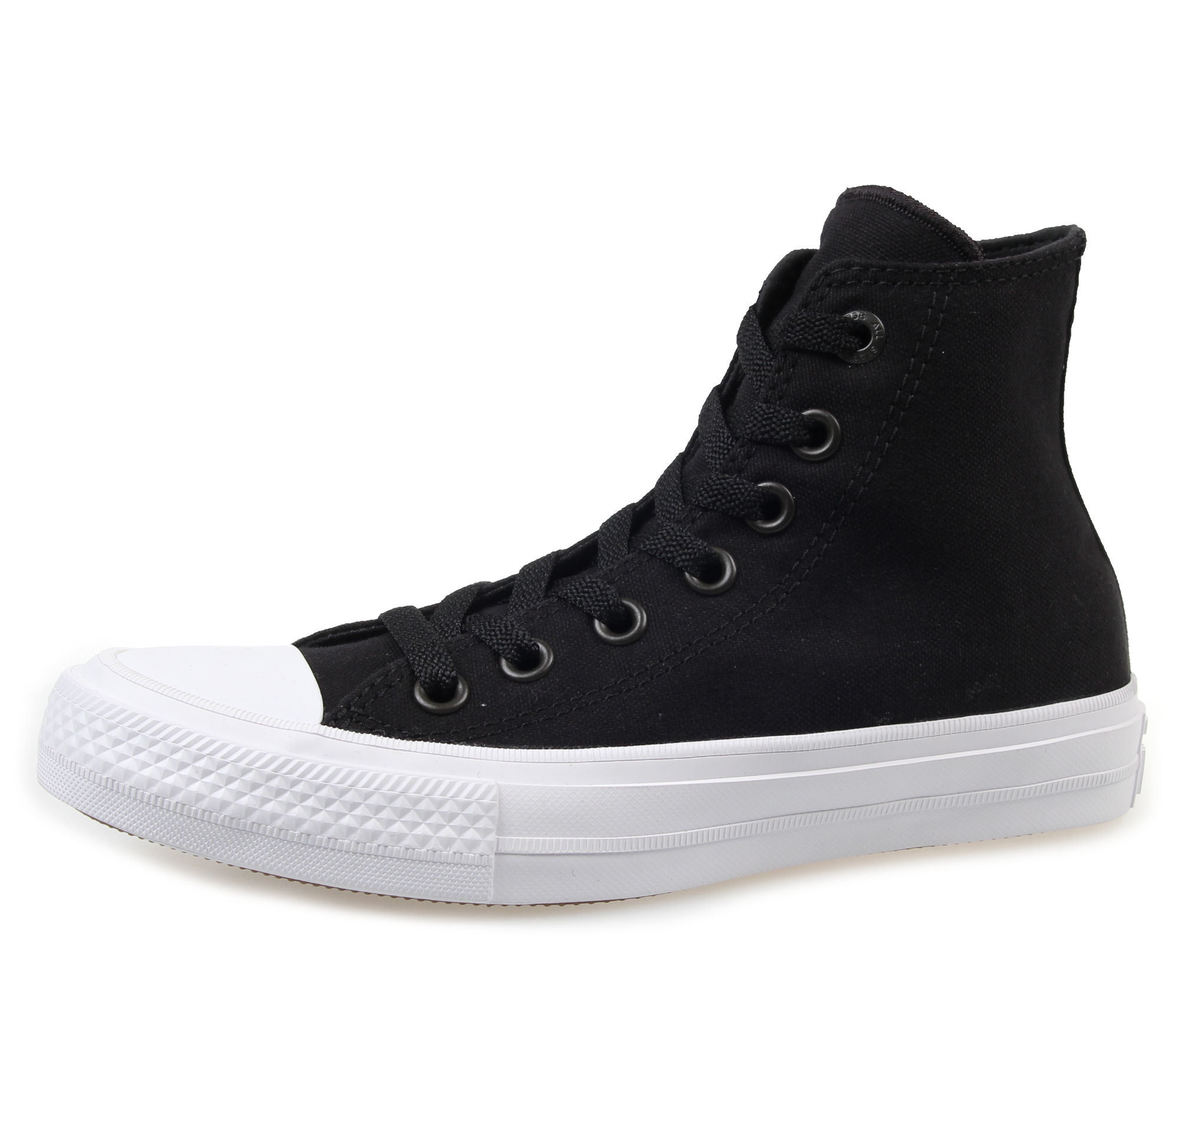 boty CONVERSE - Chuck Taylor All Star II - BLACK/WHITE - C150143